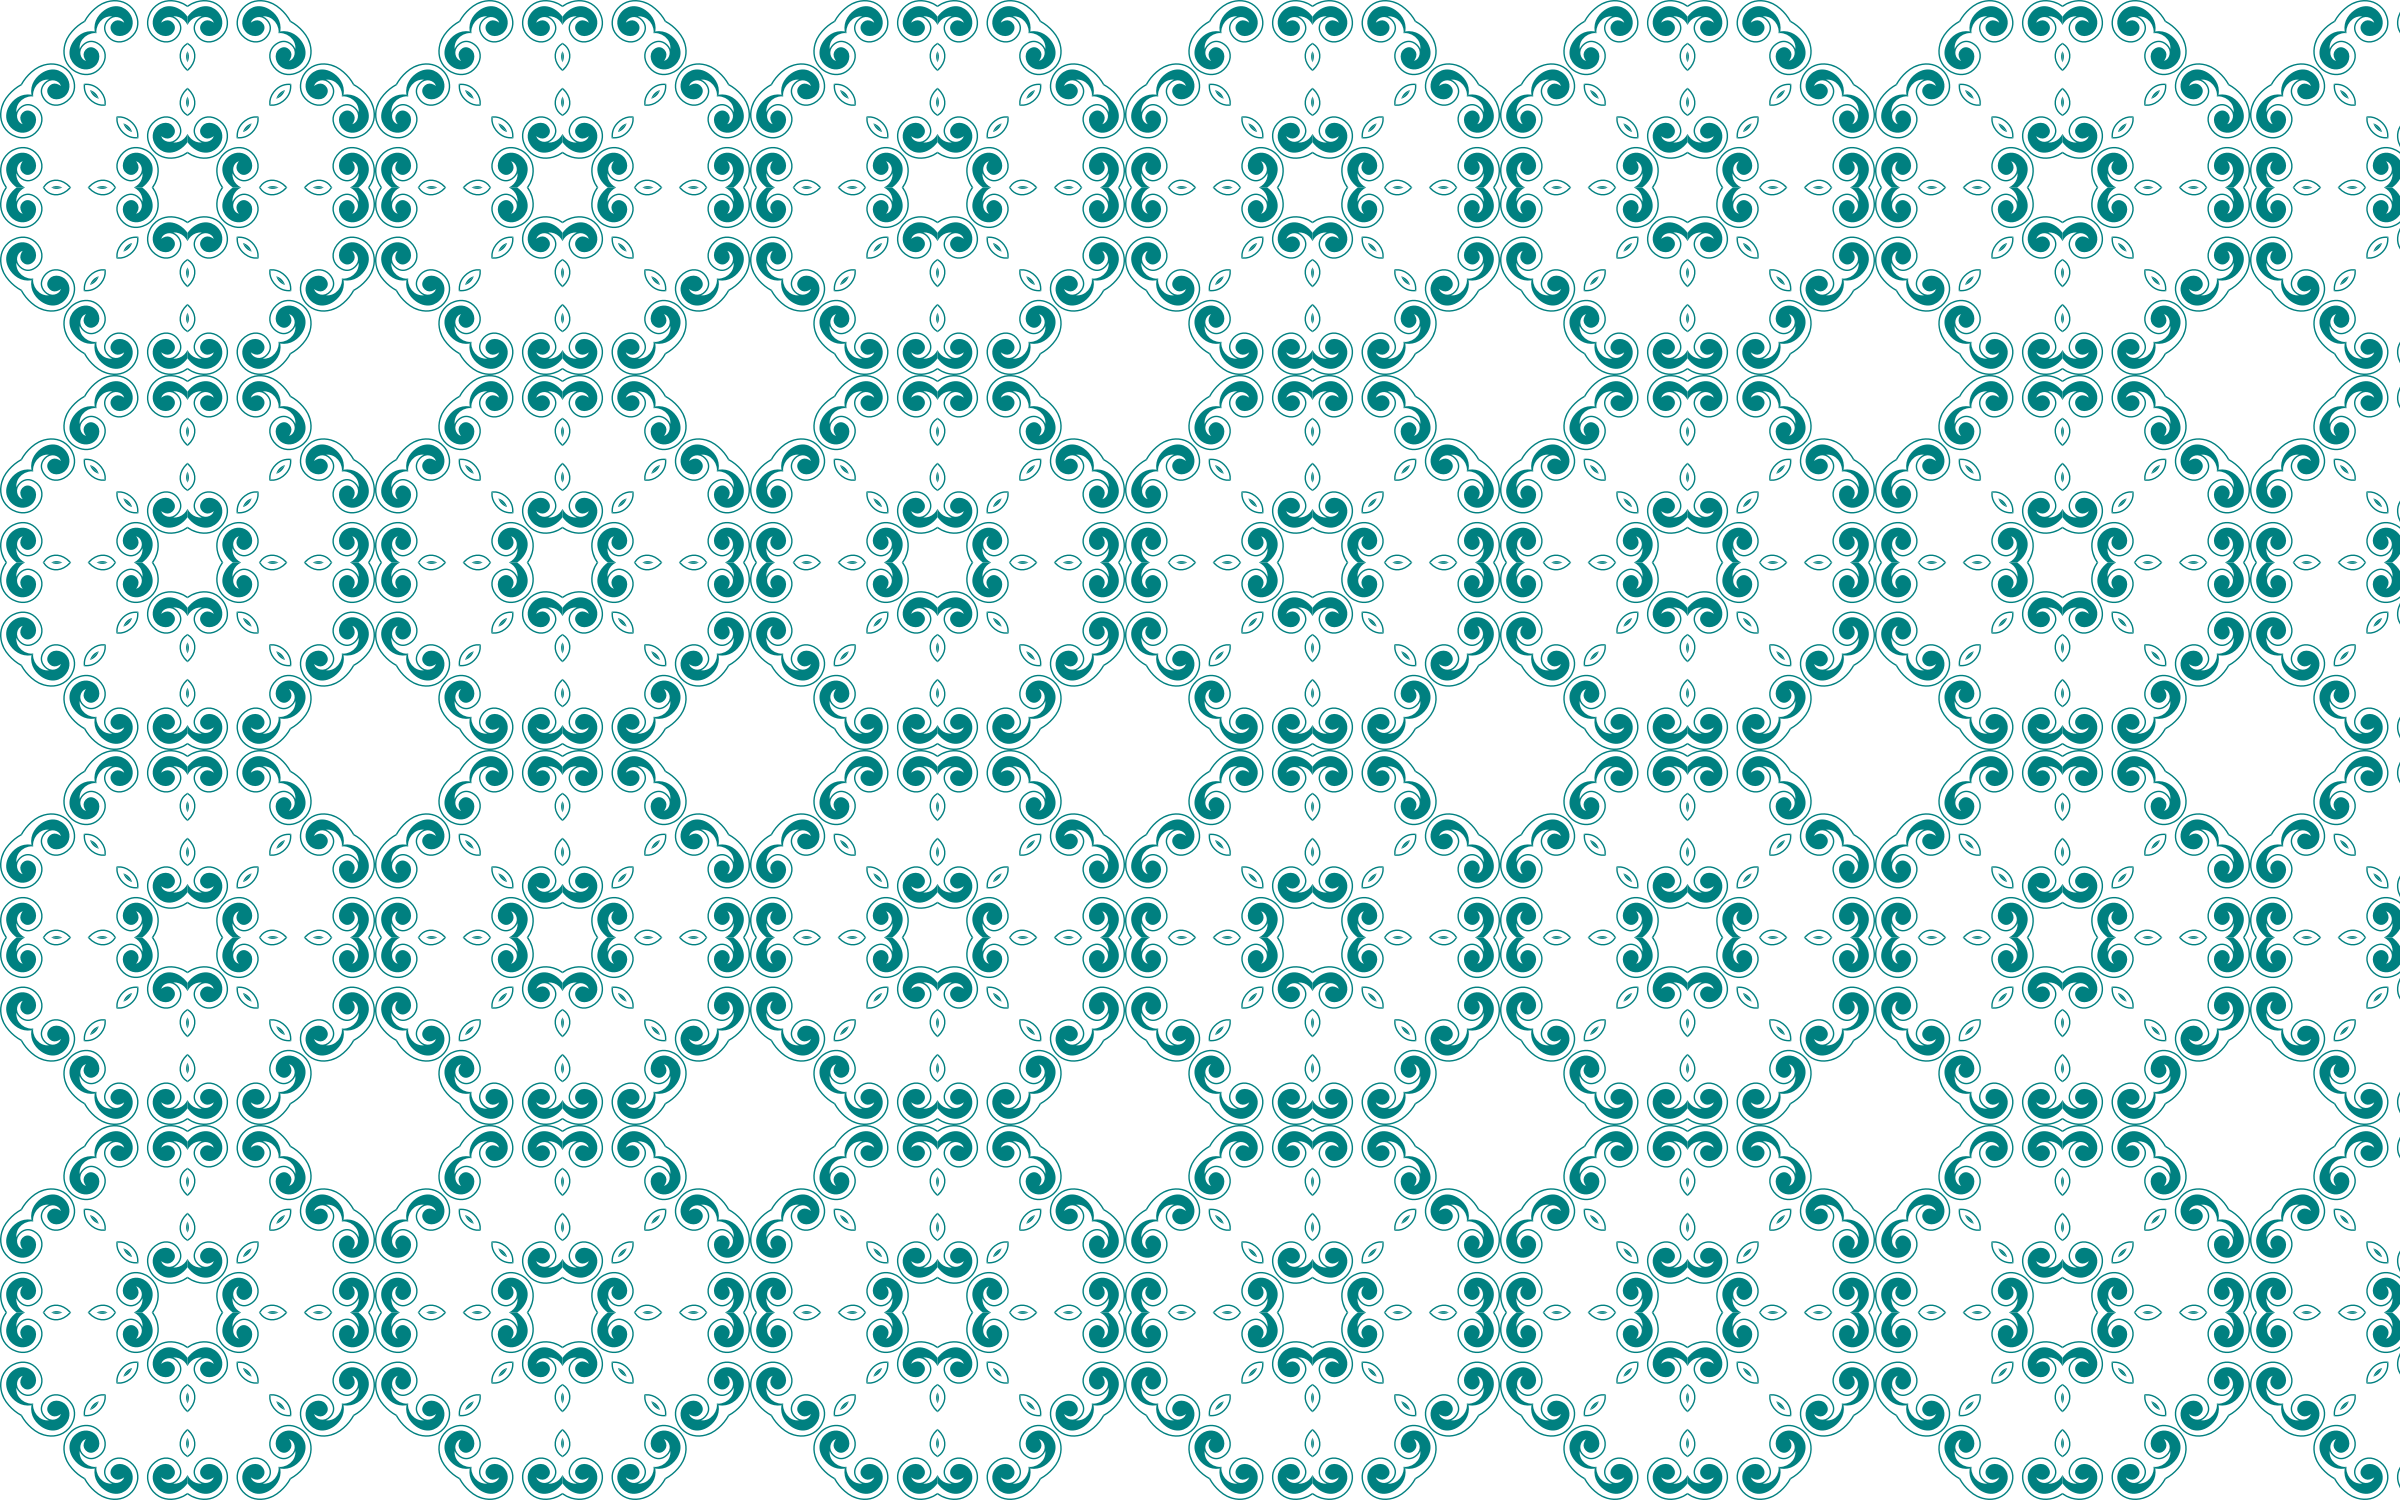 Seamless Pattern 140 by GDJ